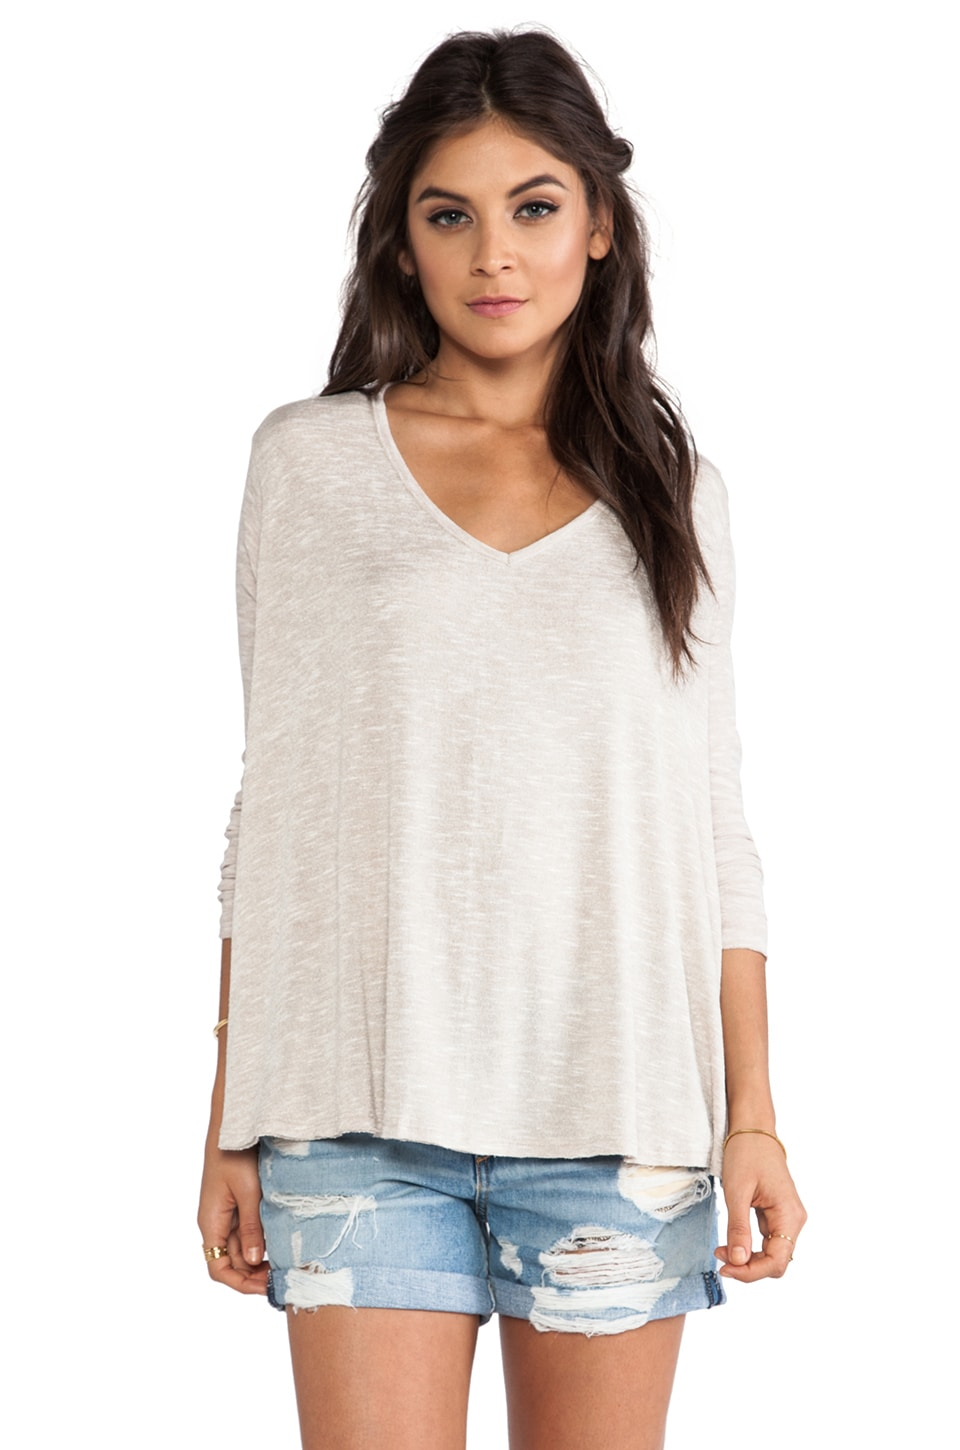 Free People Sunday Tee in Oatmeal